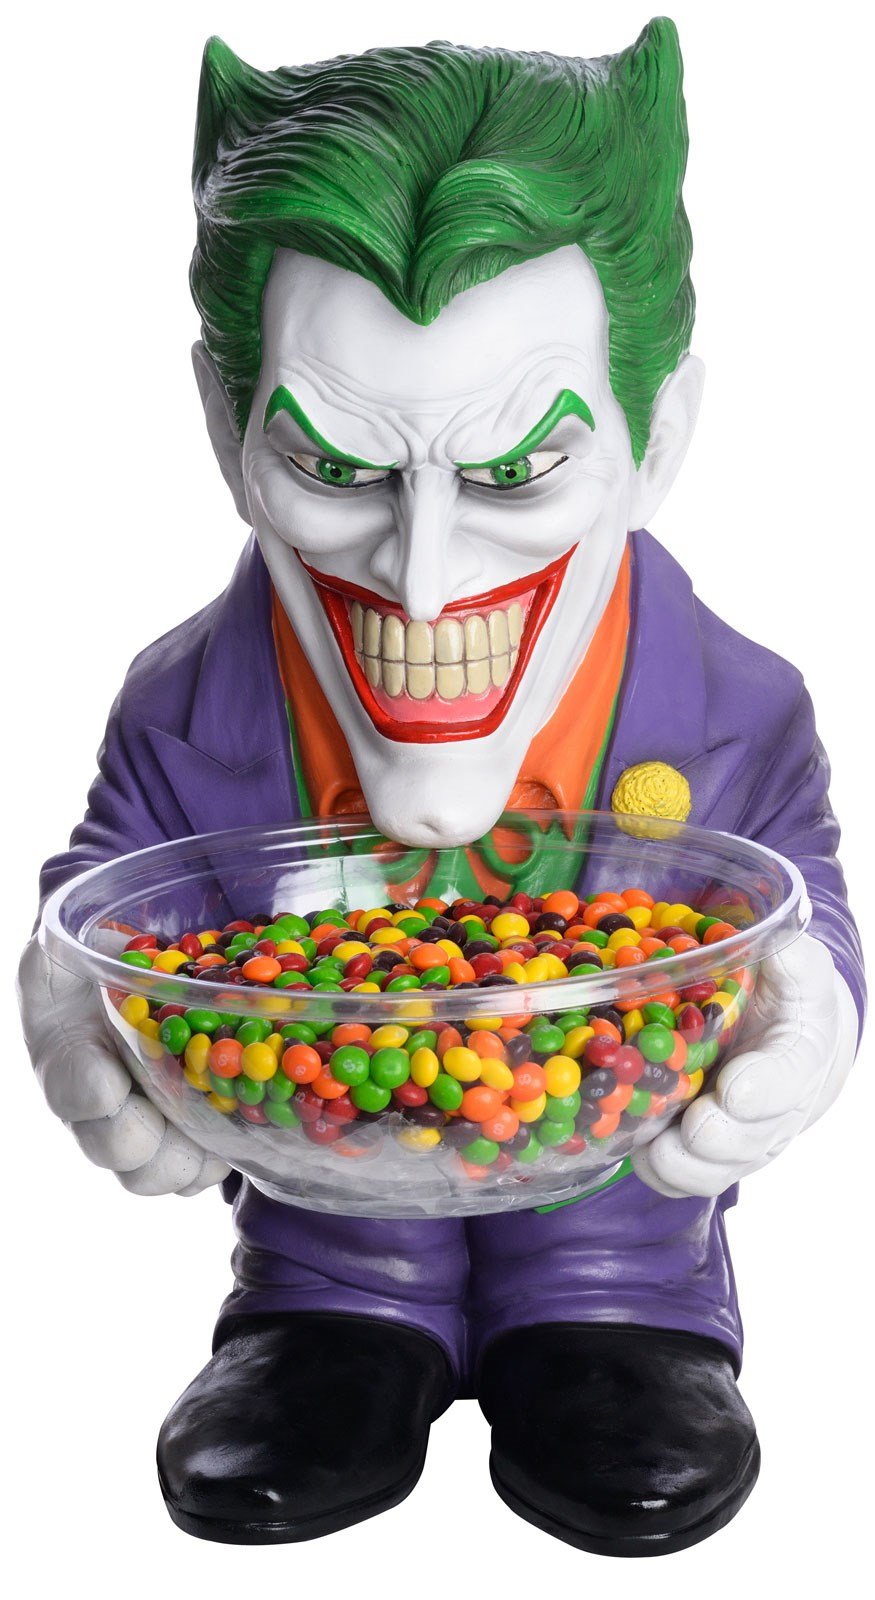 Image of The Joker Candy Bowl and Holder